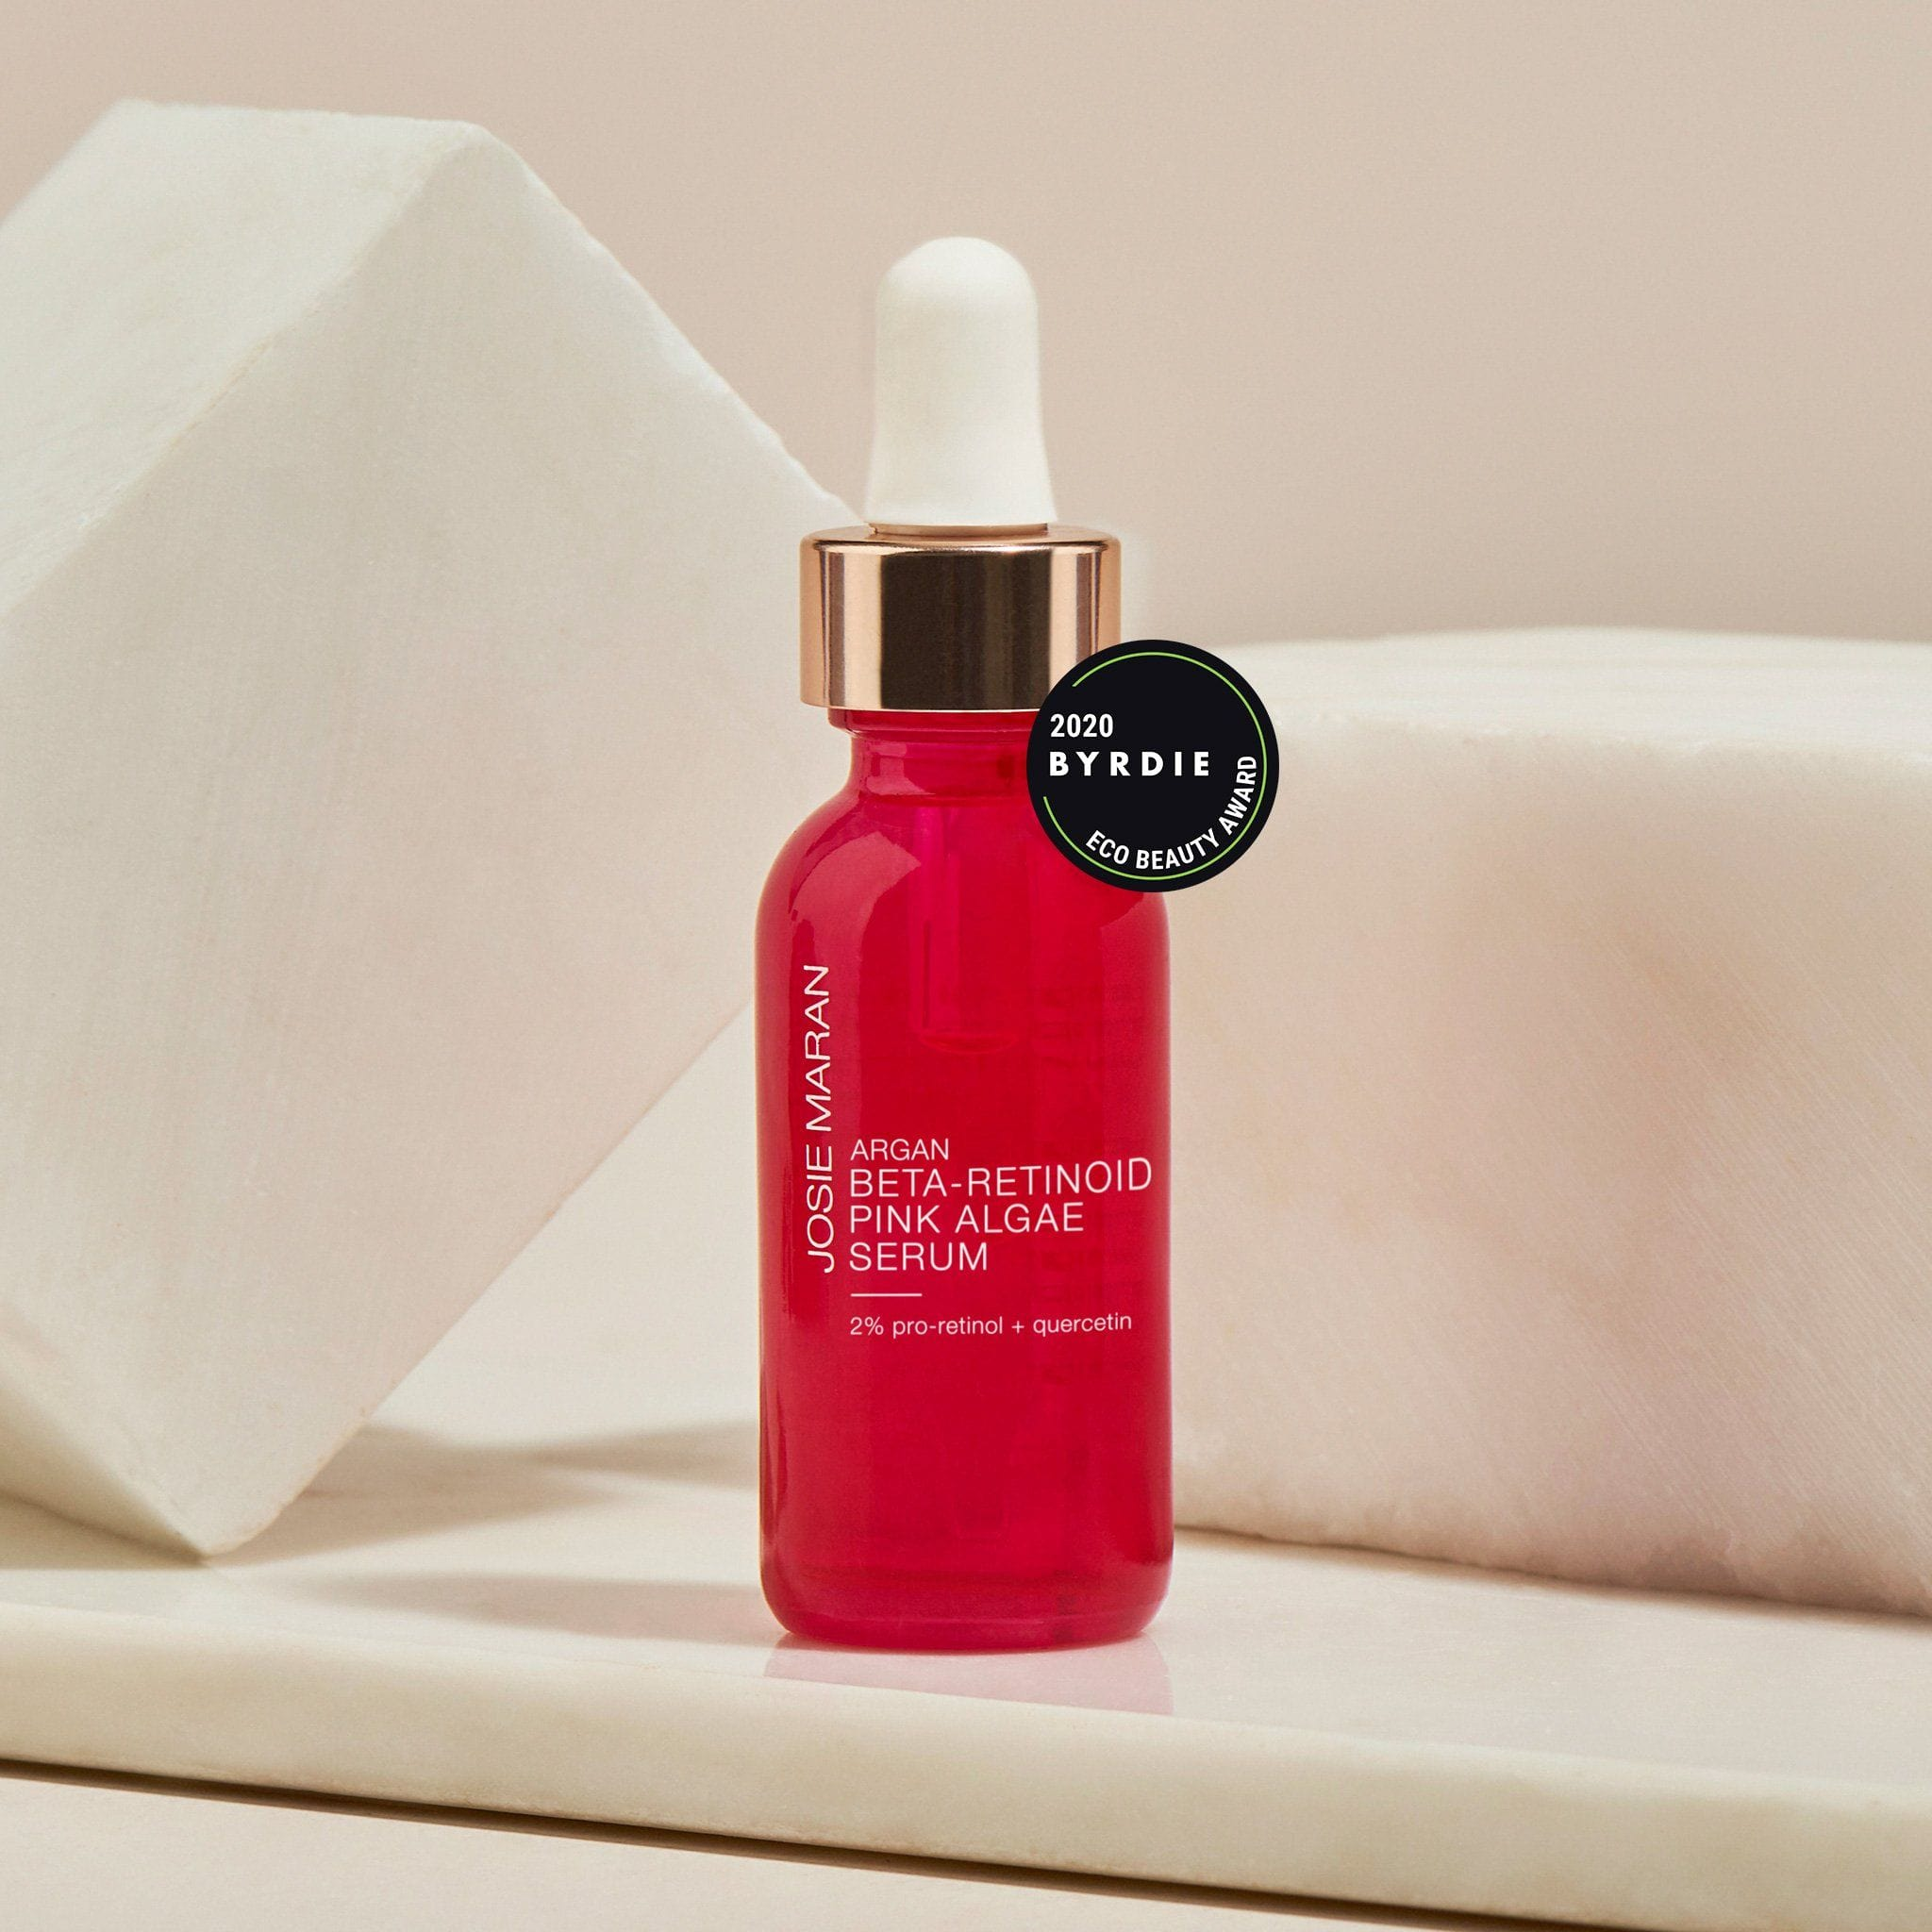 Argan Beta-Retinoid Pink Algae Serum